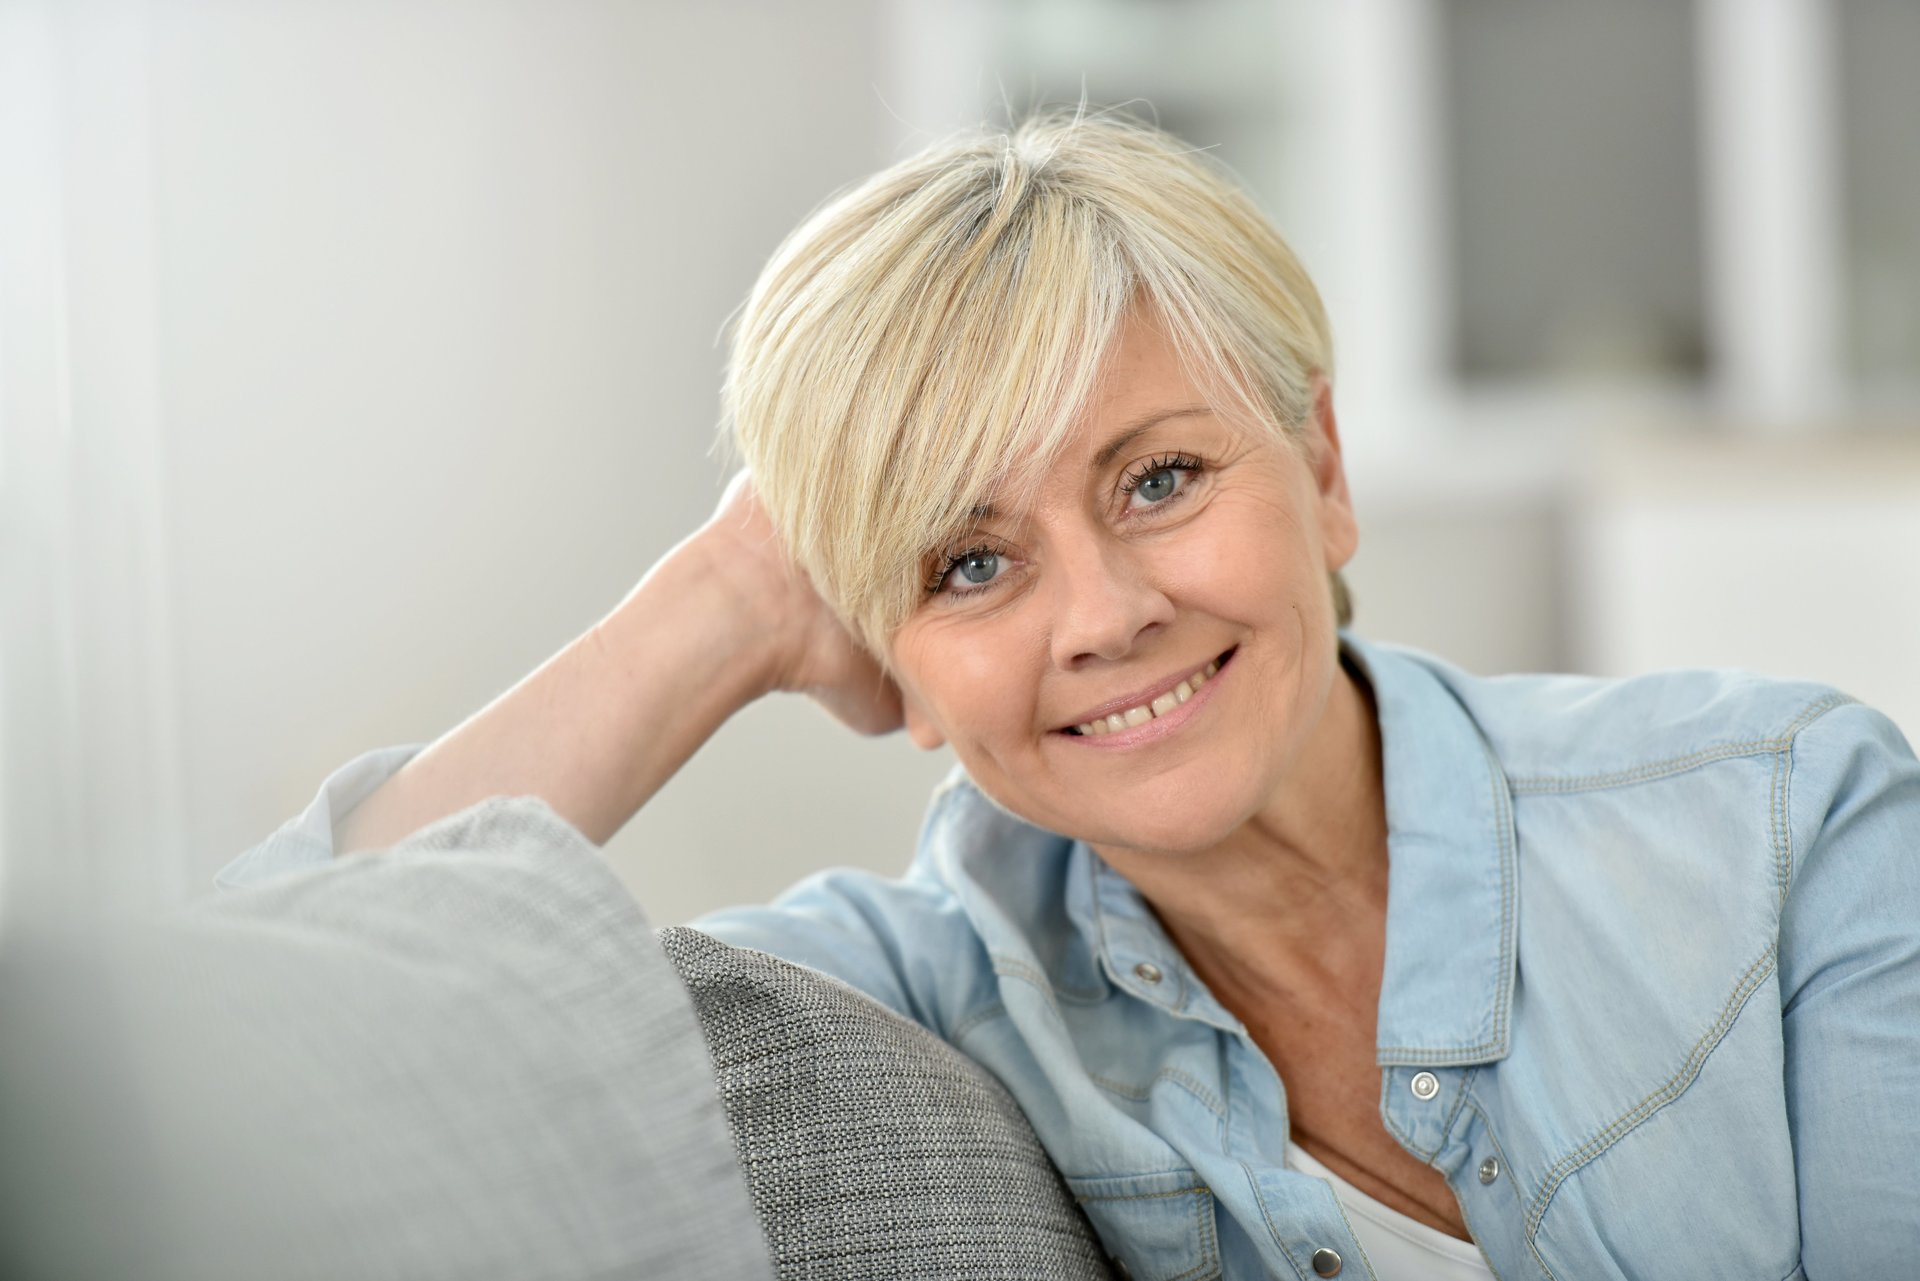 Smiling middle aged woman on couch